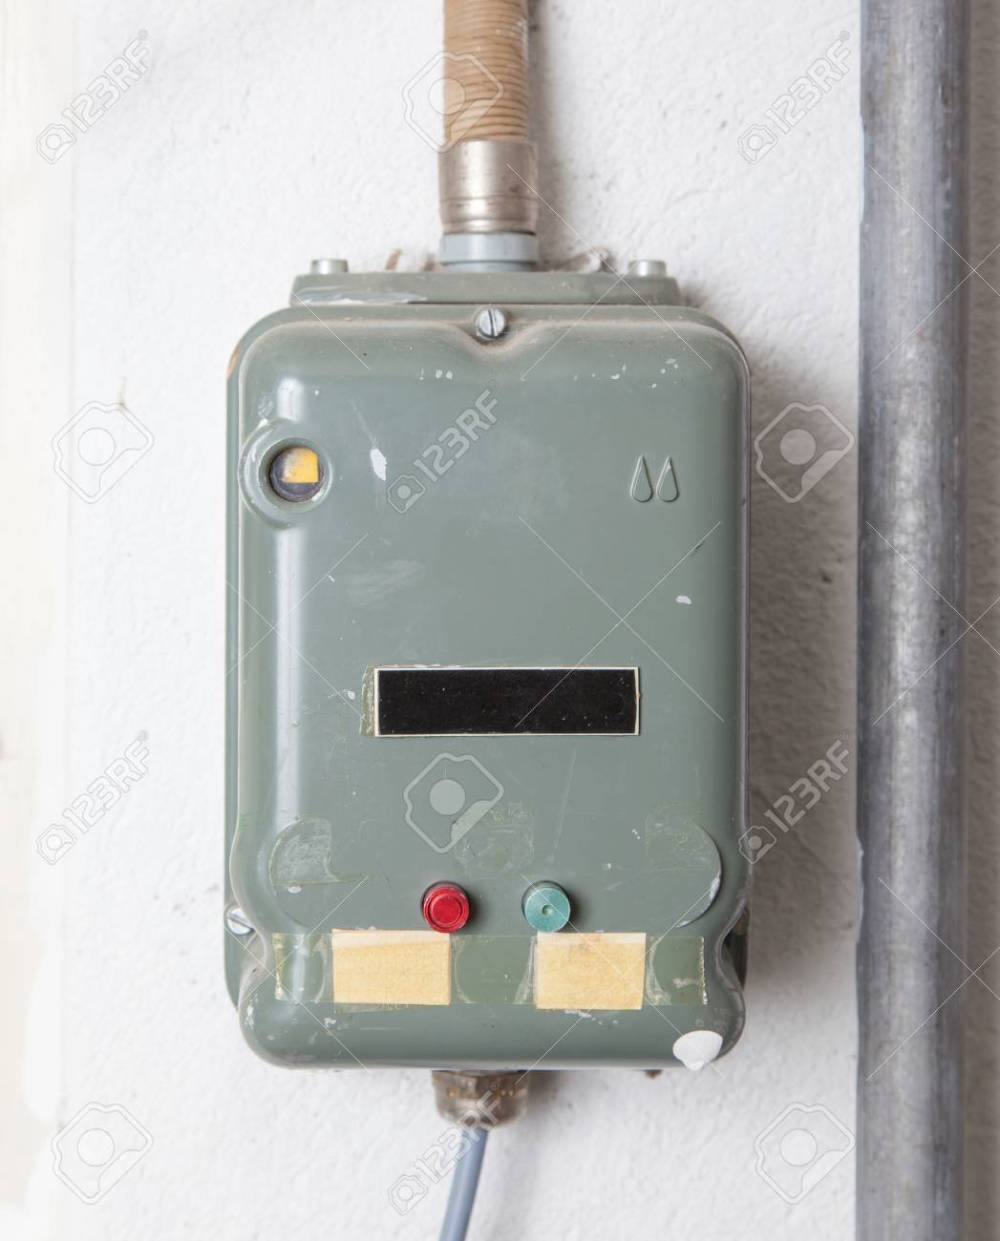 medium resolution of old fusebox from the 80s house in switzerland stock photo 44314148